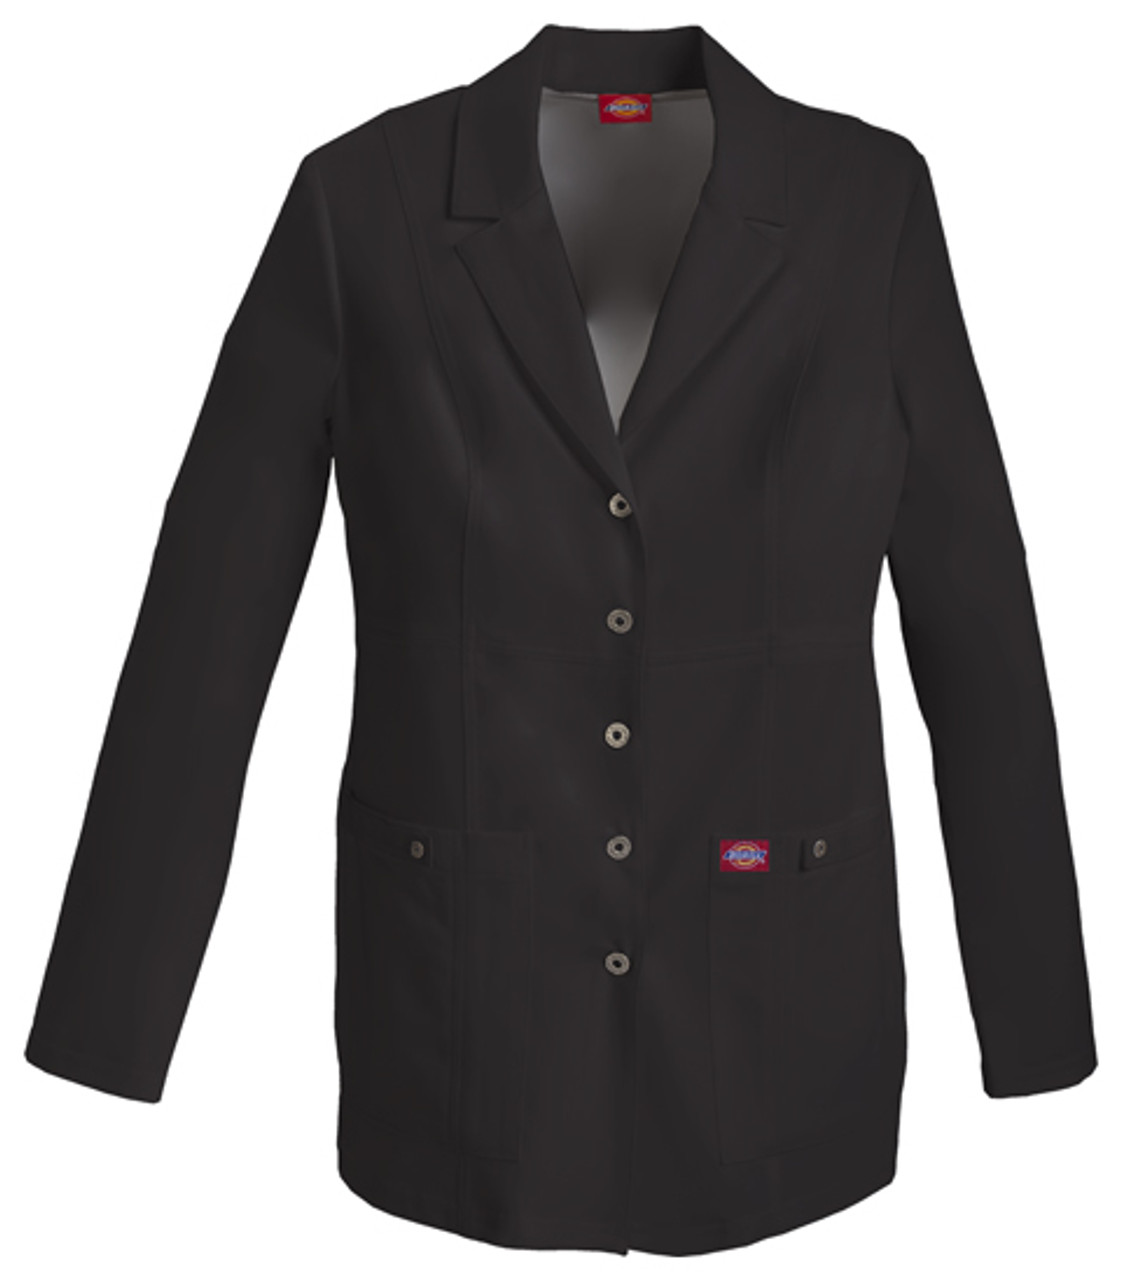 82400 Lab Coat in Black